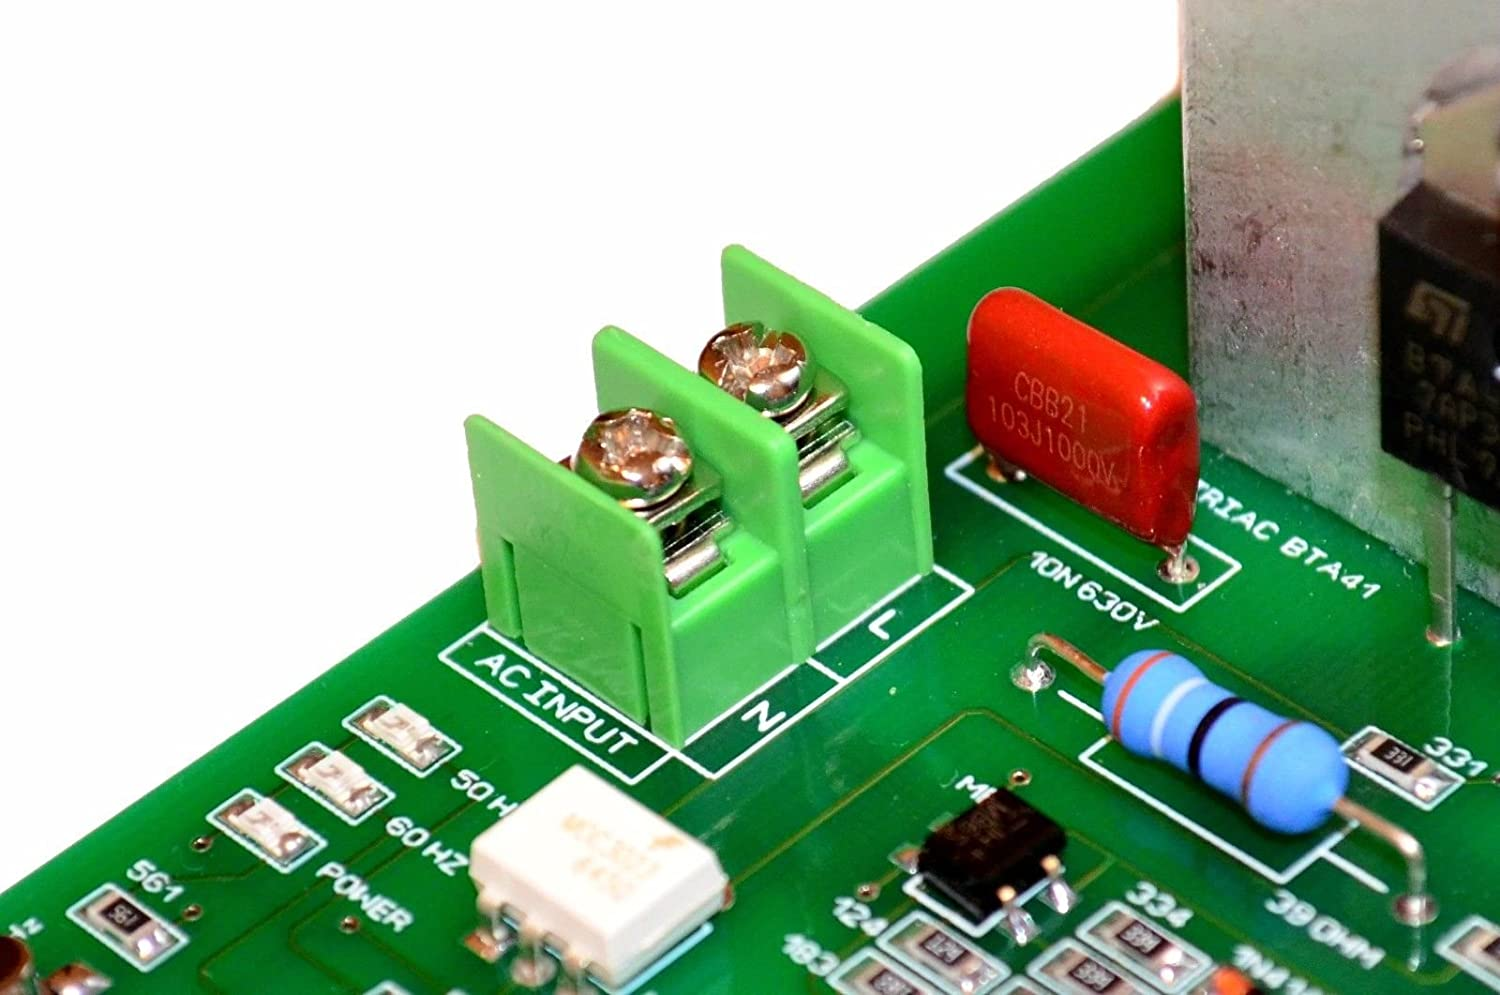 Voltage About 630v Be Careful Direction Contact With Into Circuit